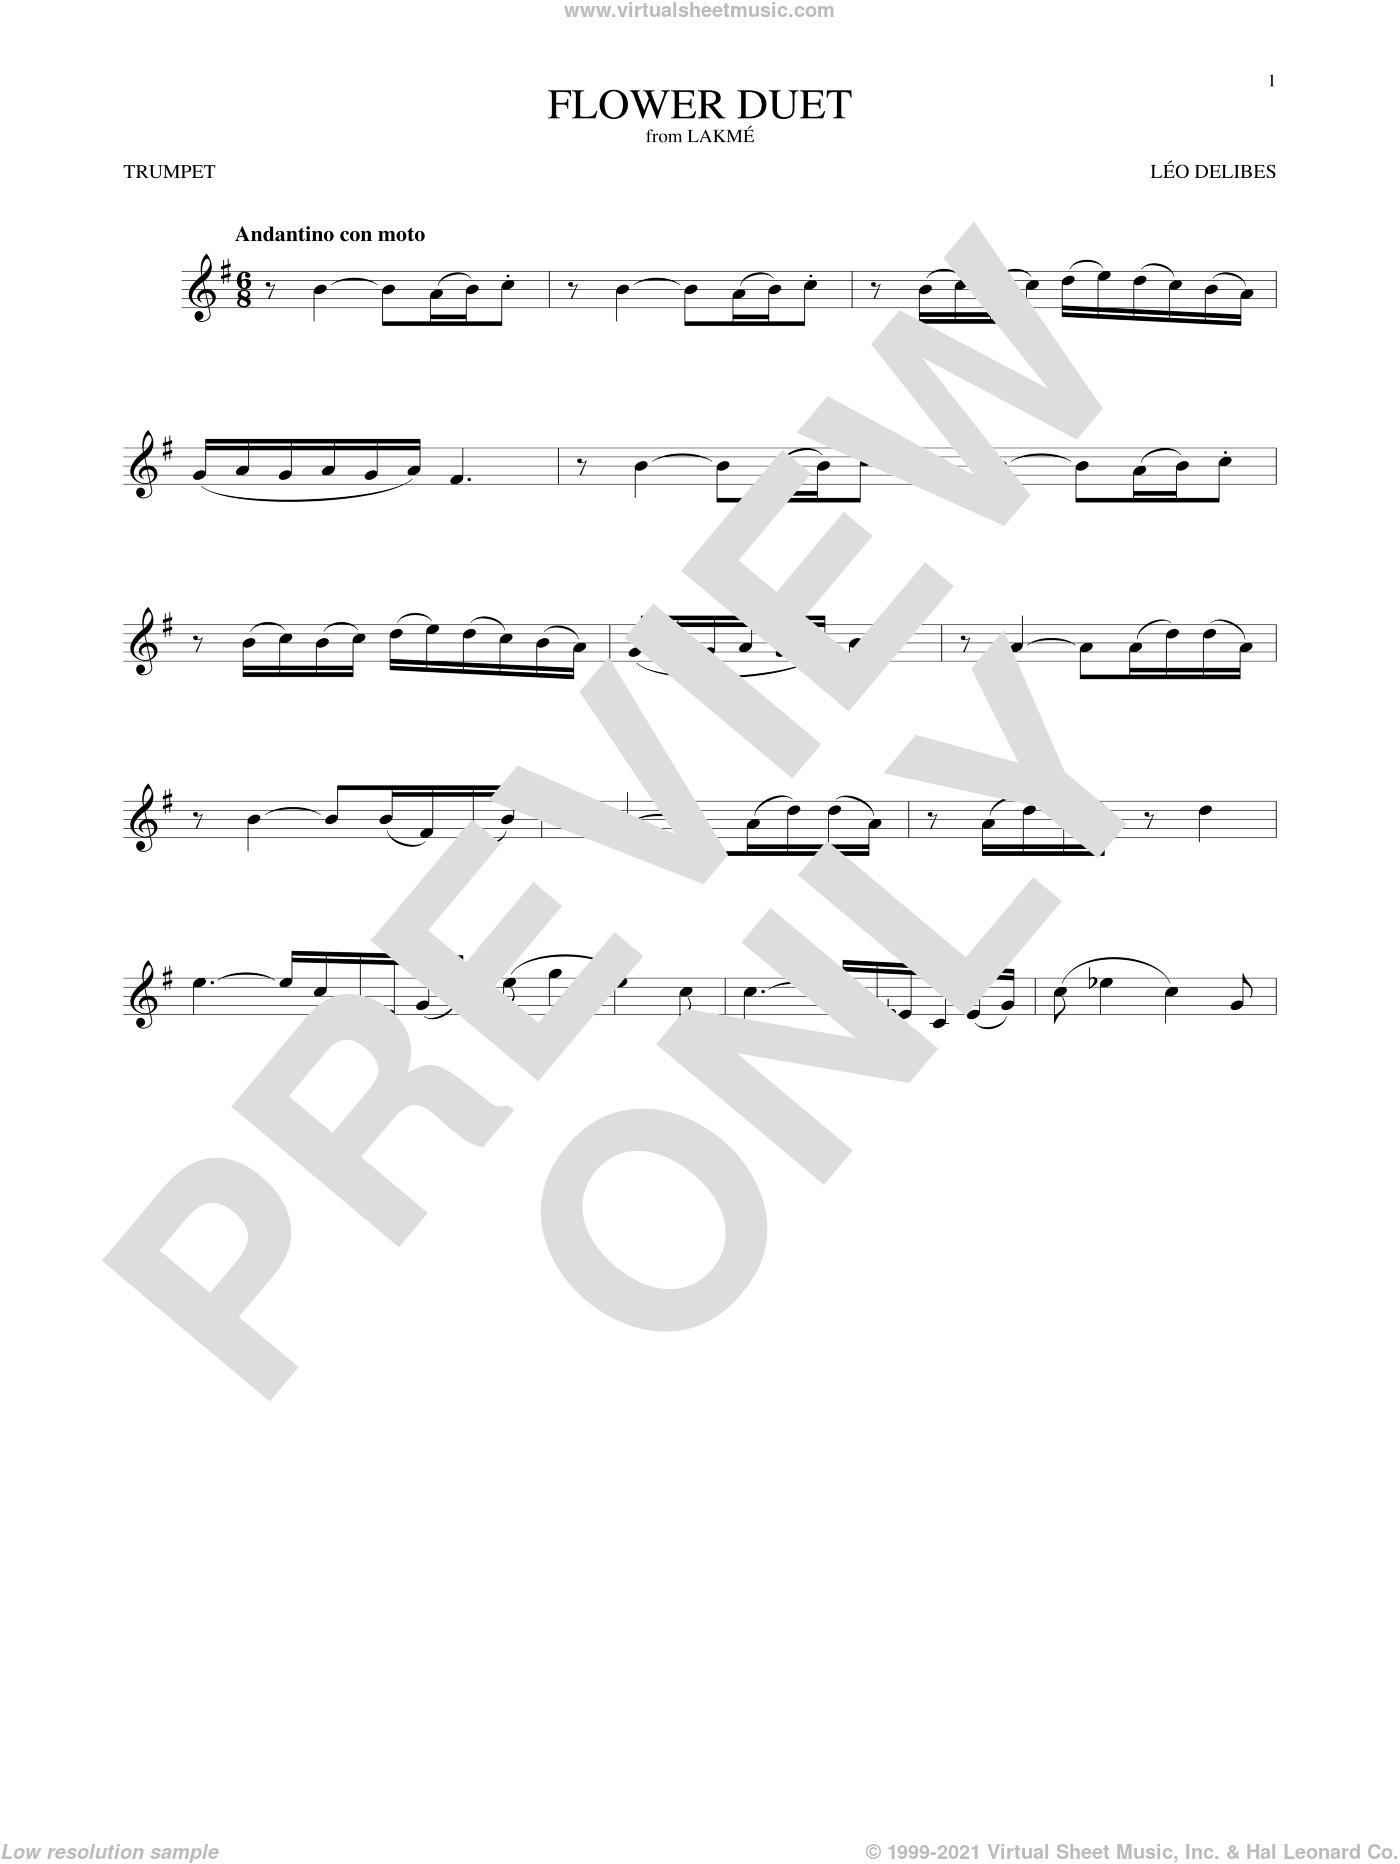 Flower Duet sheet music for trumpet solo by Leo Delibes and Leo Delibes, classical score, intermediate skill level